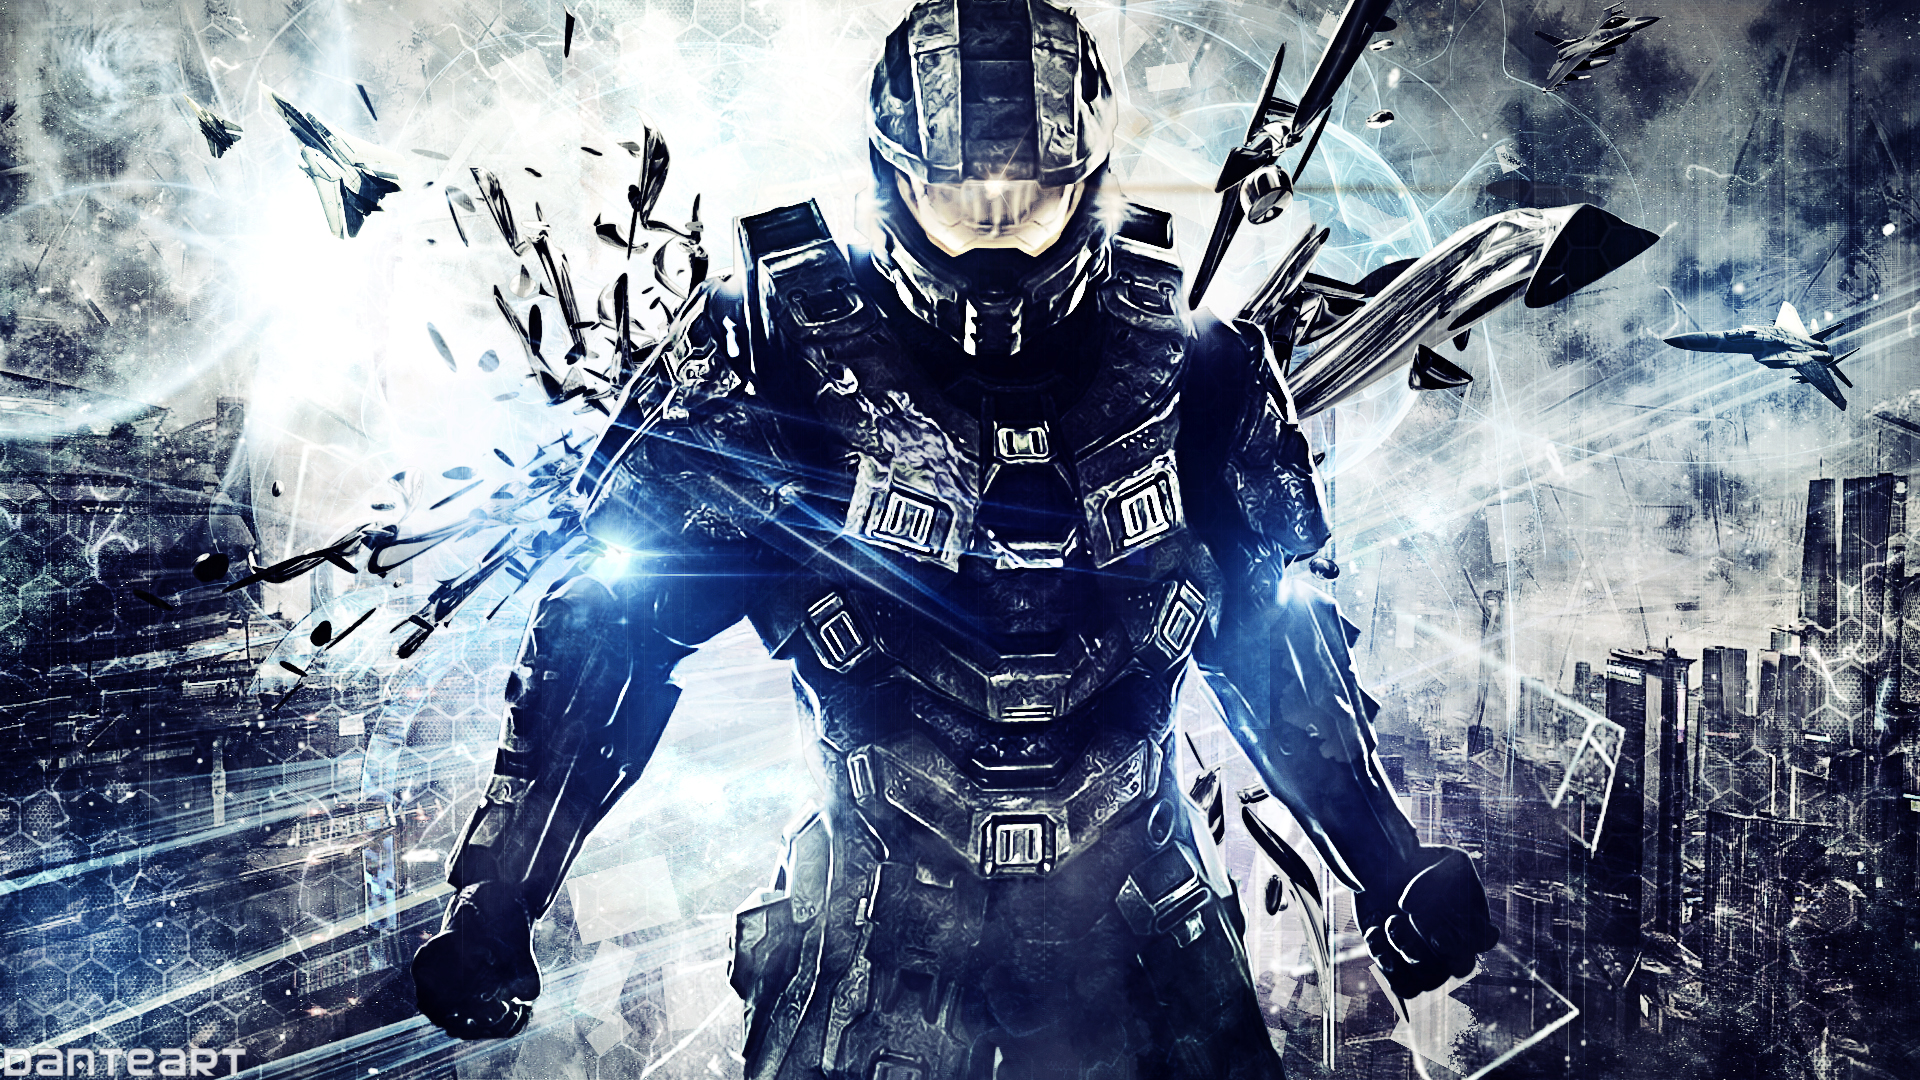 halo 4 wallpaper by danteartwallpapers fan art wallpaper games 2013 1920x1080